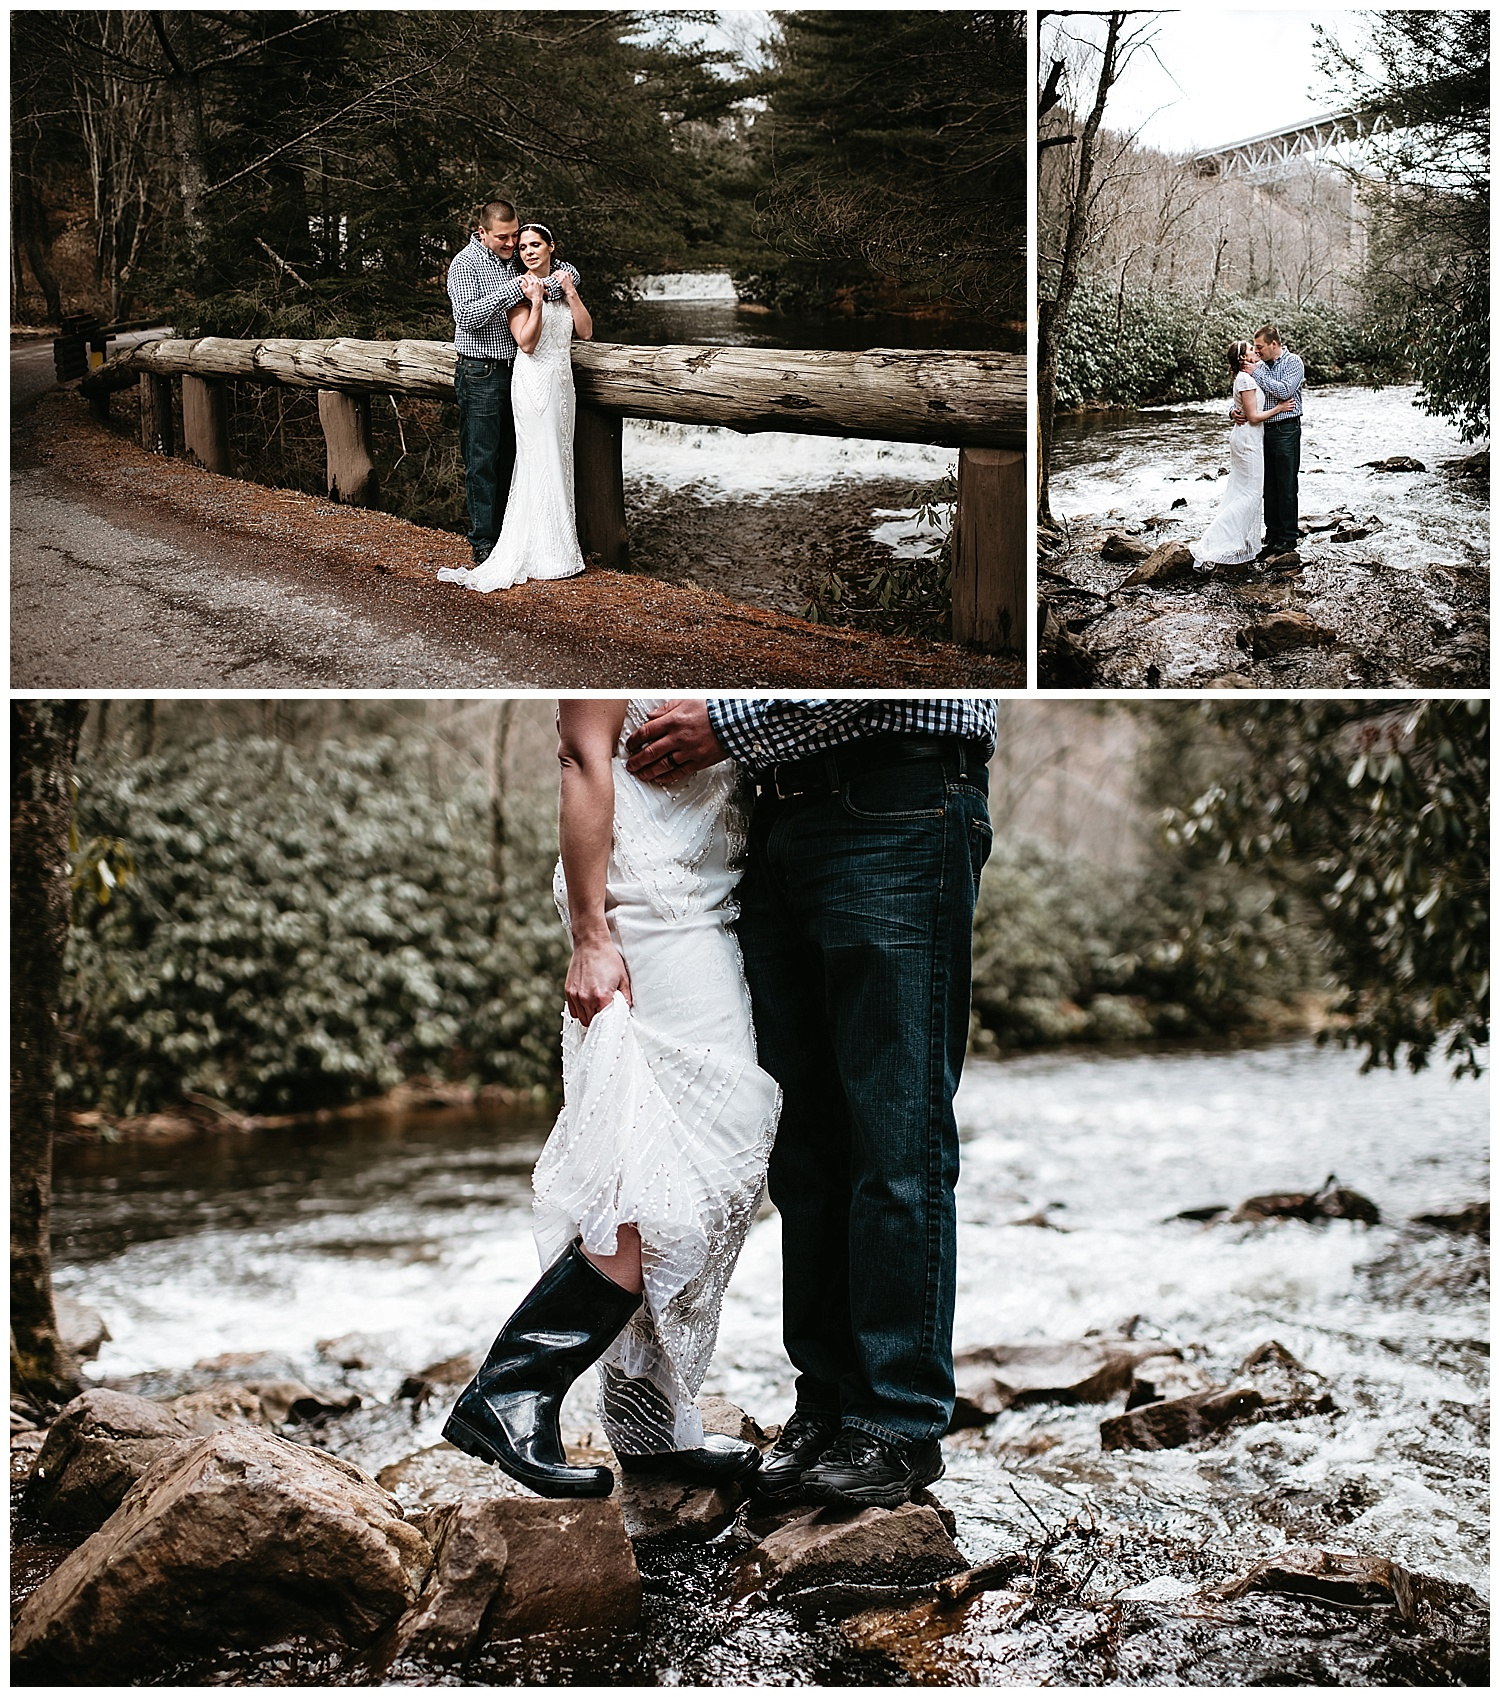 NEPA-Wedding-Engagement-photographer-hickory-run-state-park-hawk-falls-elopement_0035.jpg